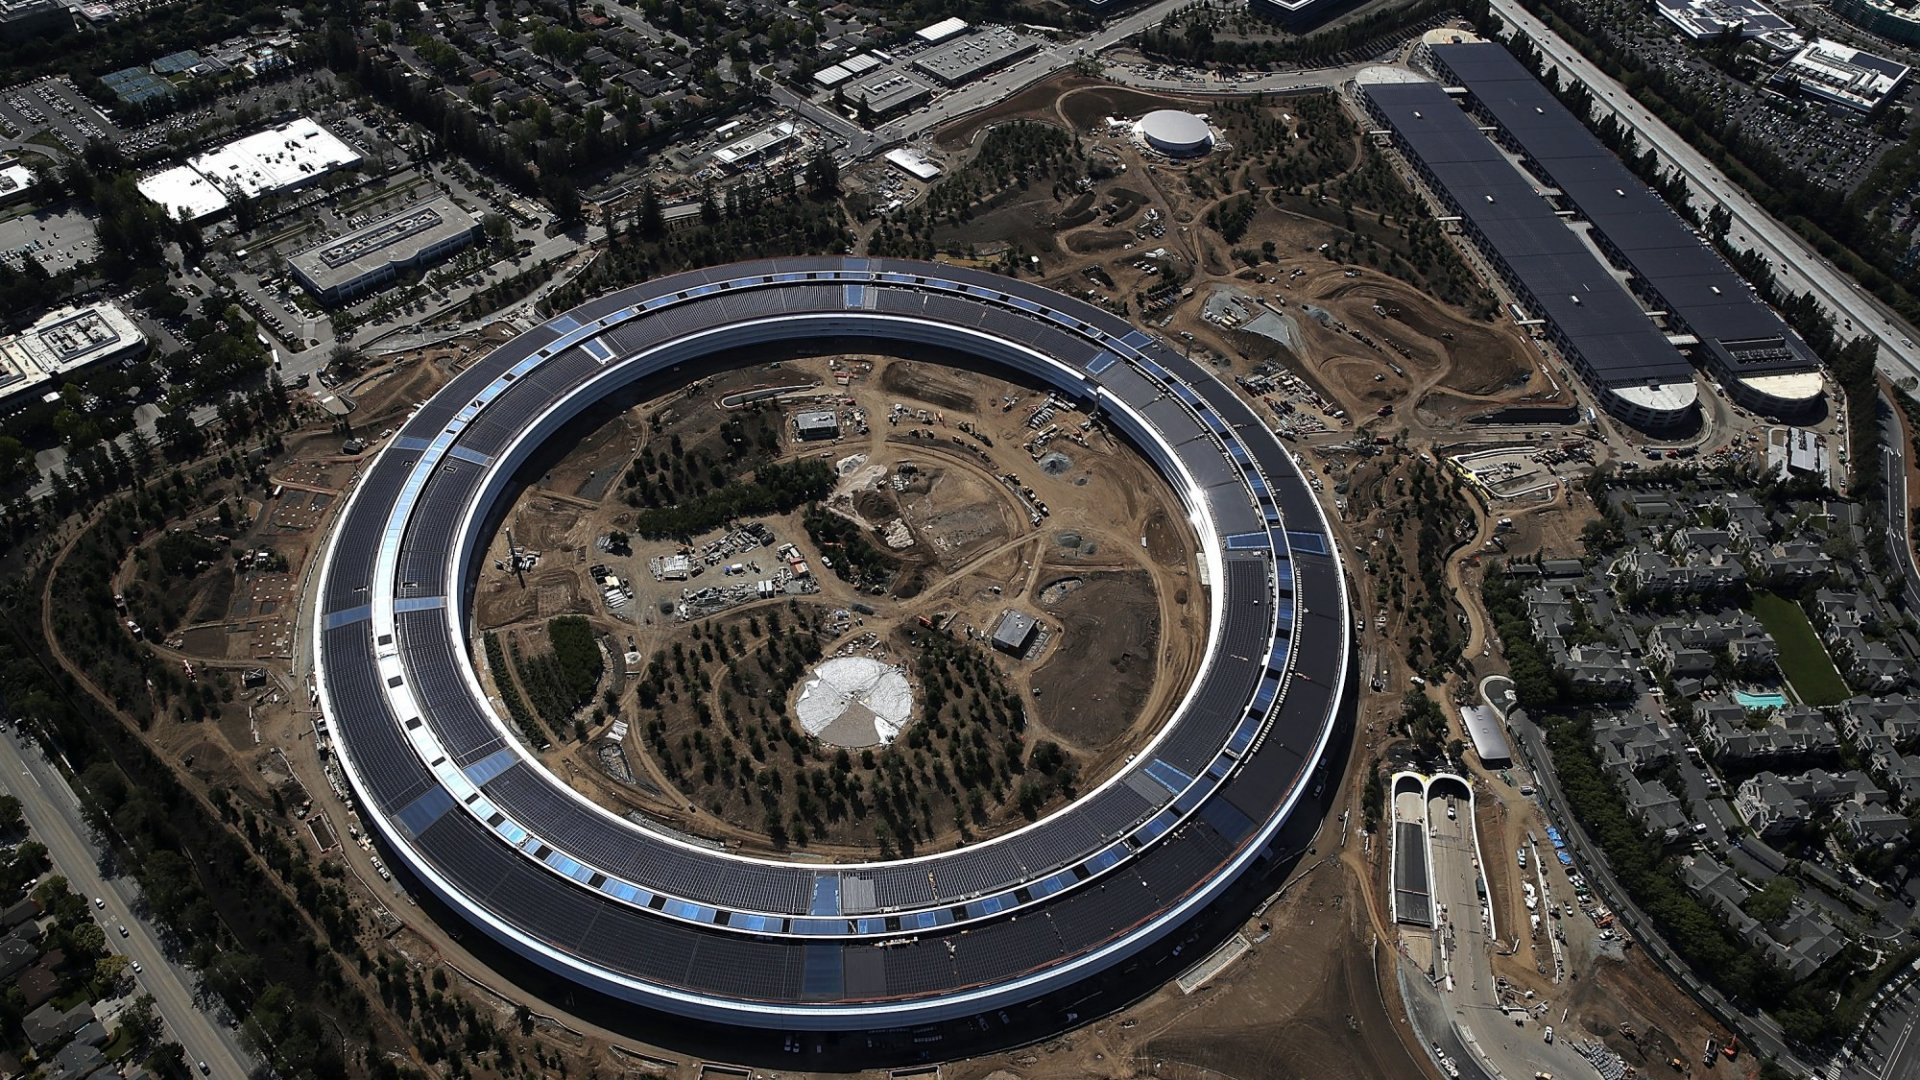 Did Apple Just Give up on Innovation? This Ginormous Elephant in Silicon Valley Points to Yes